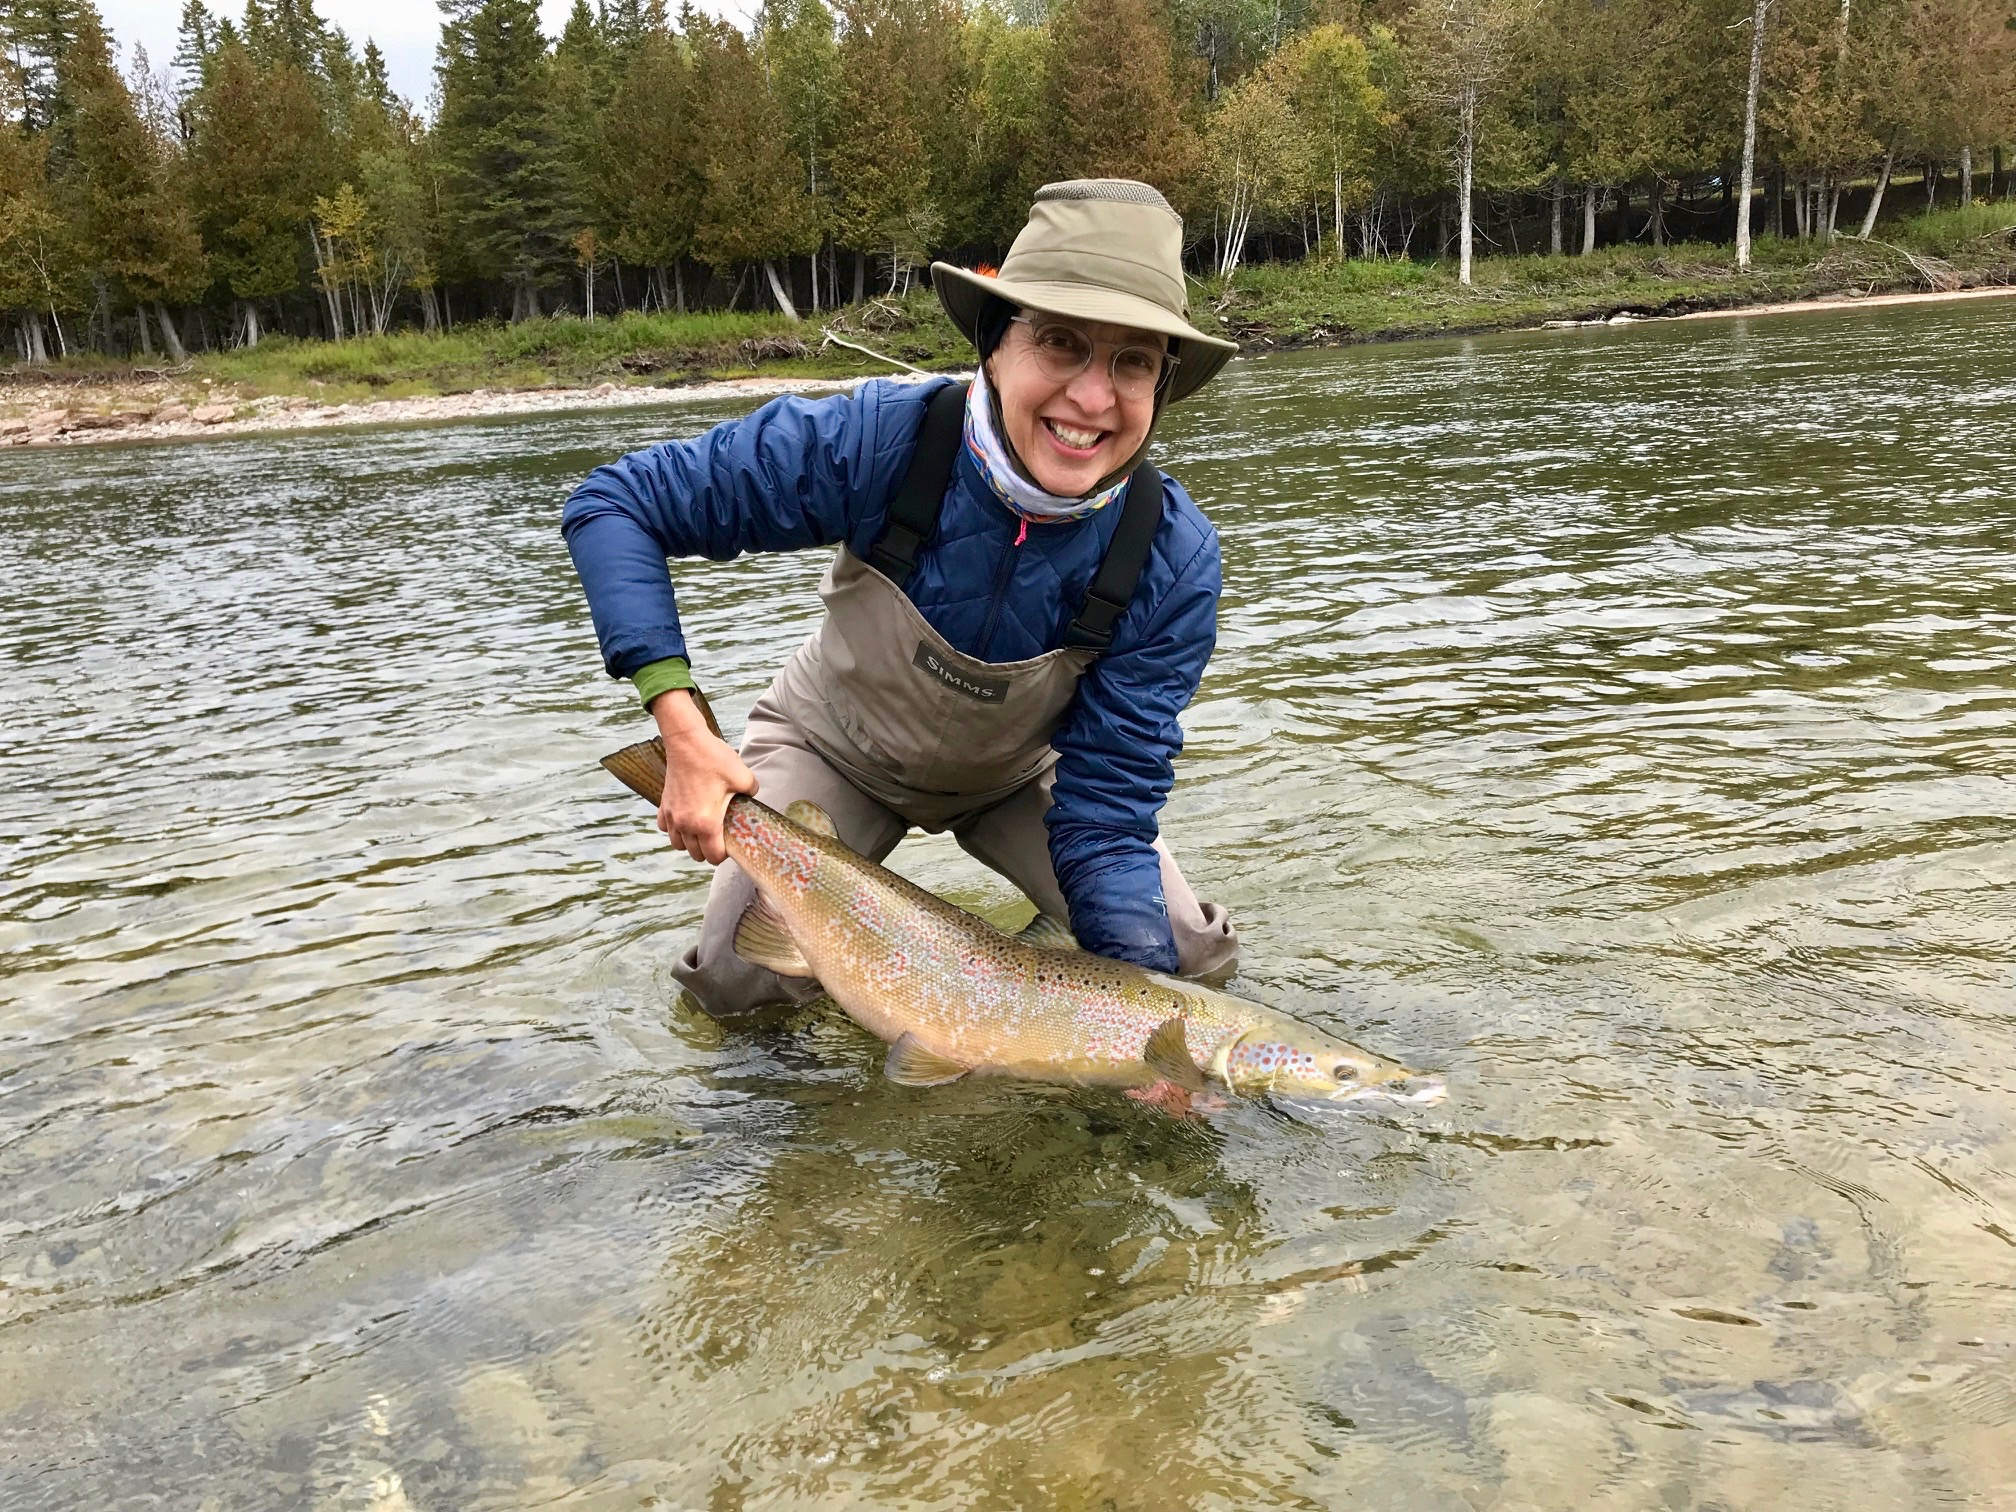 Always so nice to have Elaine back in town! She landed this great salmon on the Bonaventure River! Congrats Elaine!